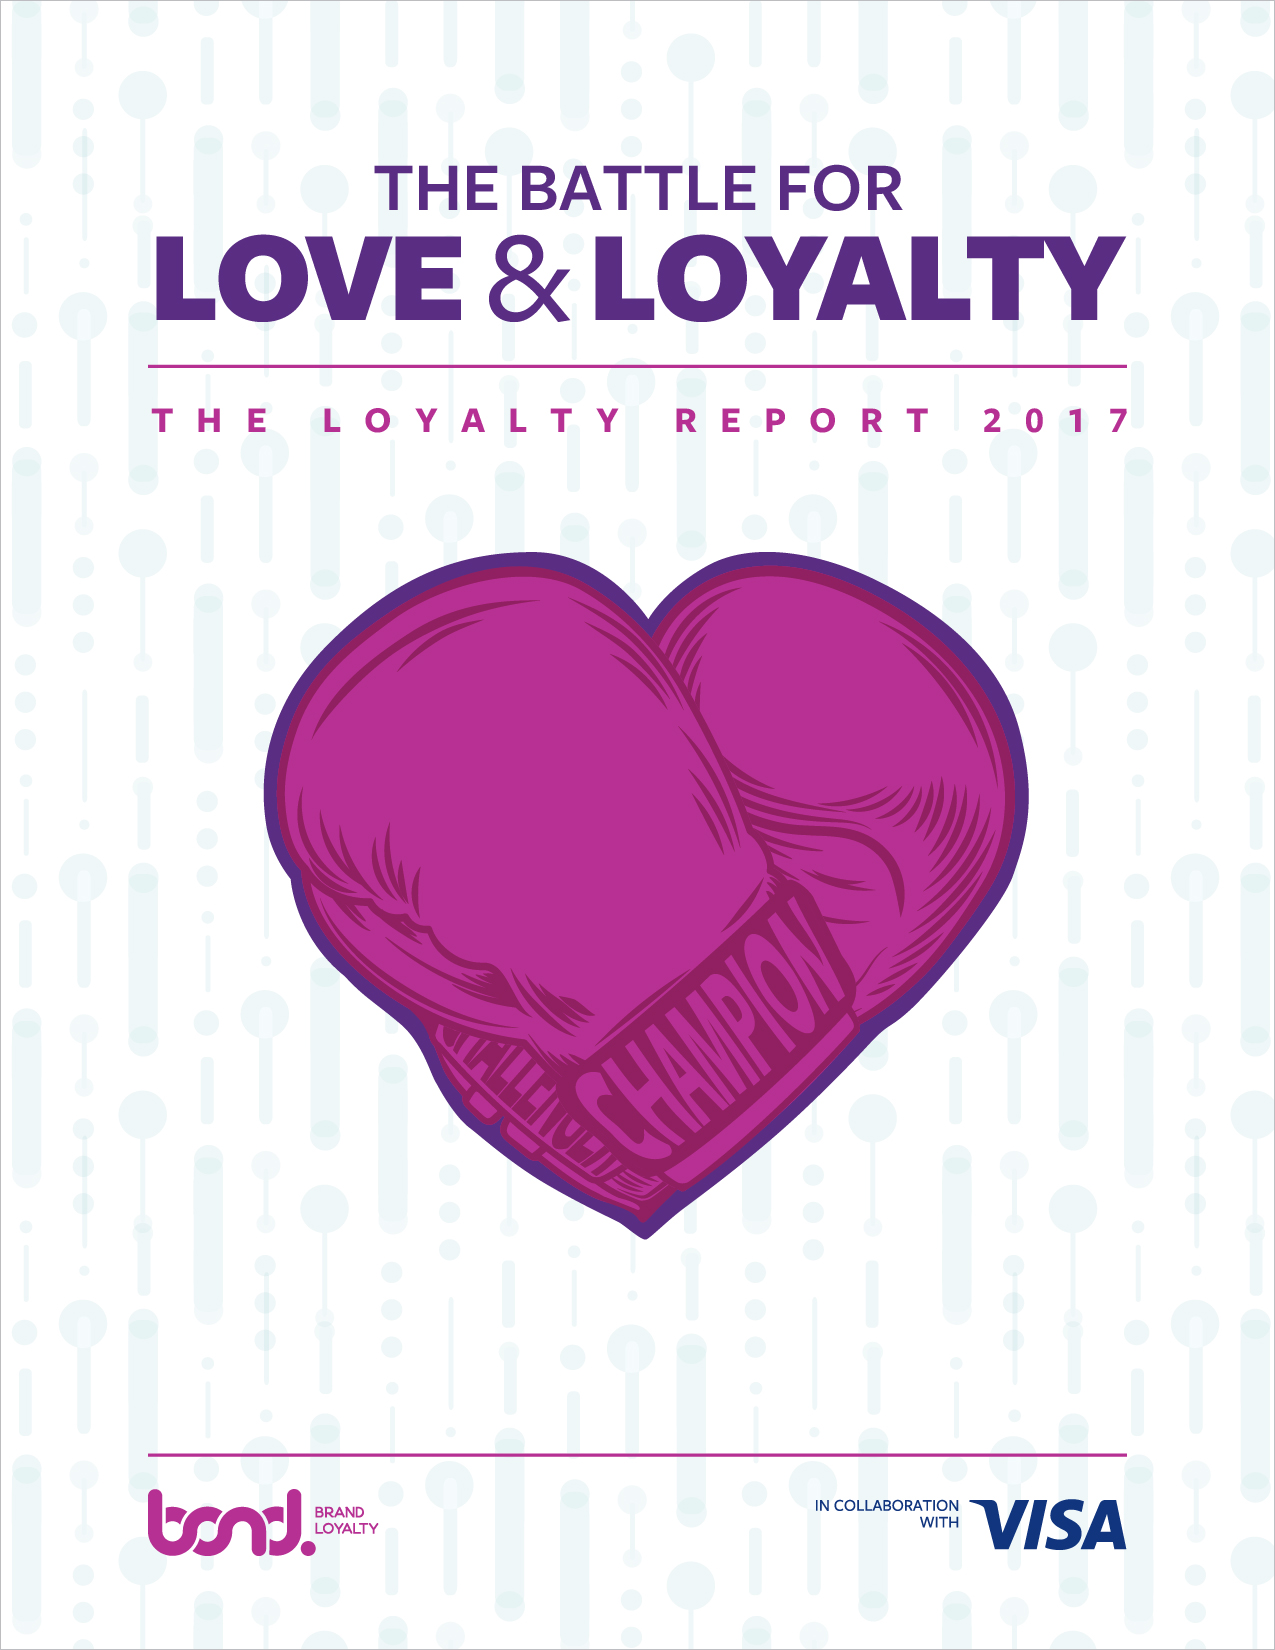 The Loyalty Report 2017